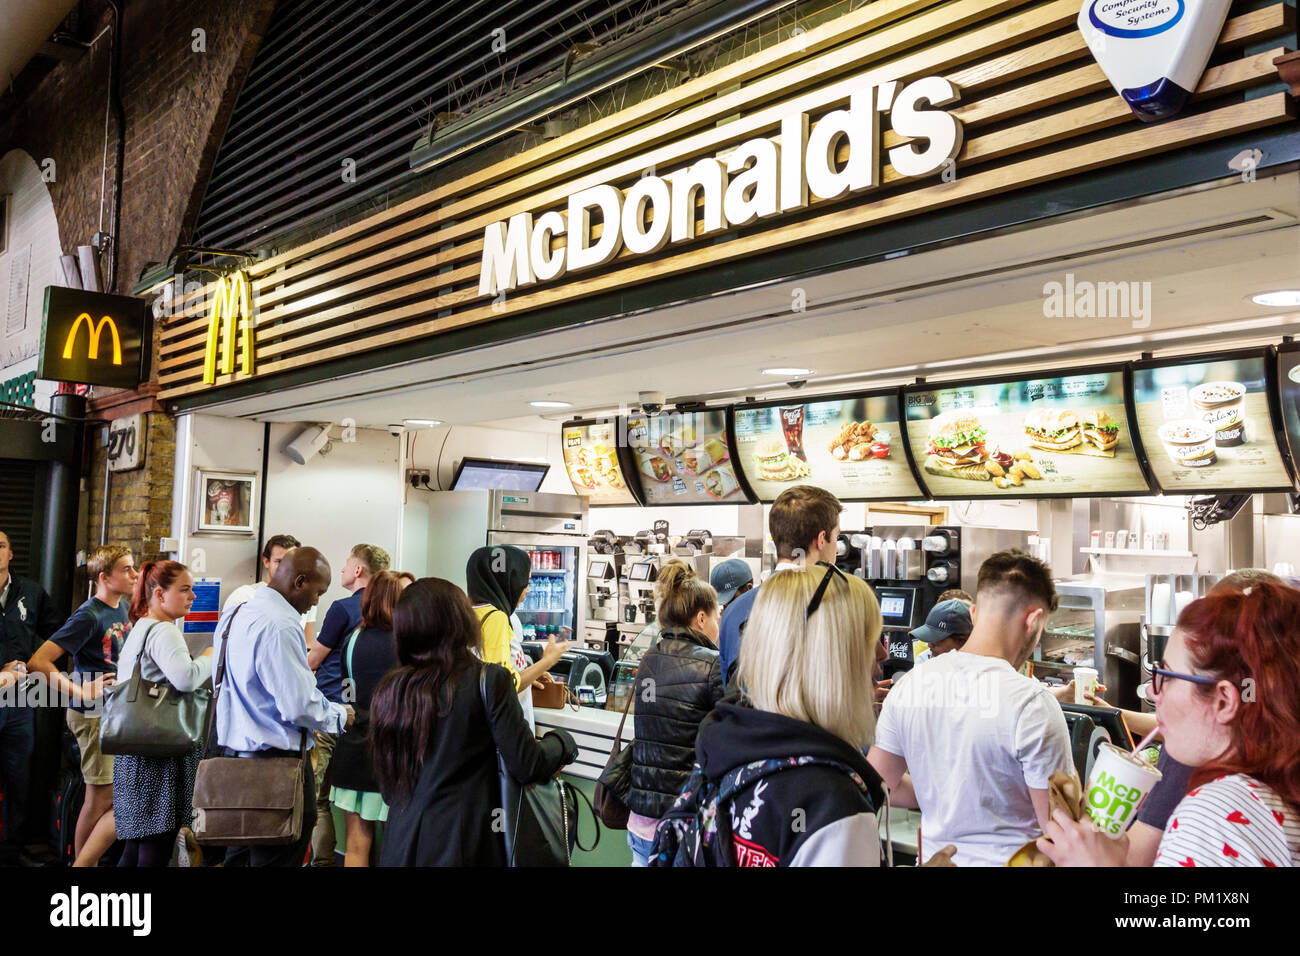 London England Great Britain United Kingdom South Bank Waterloo Station McDonald's fast food restaurant counter line queue ordering Black man woman - Stock Image